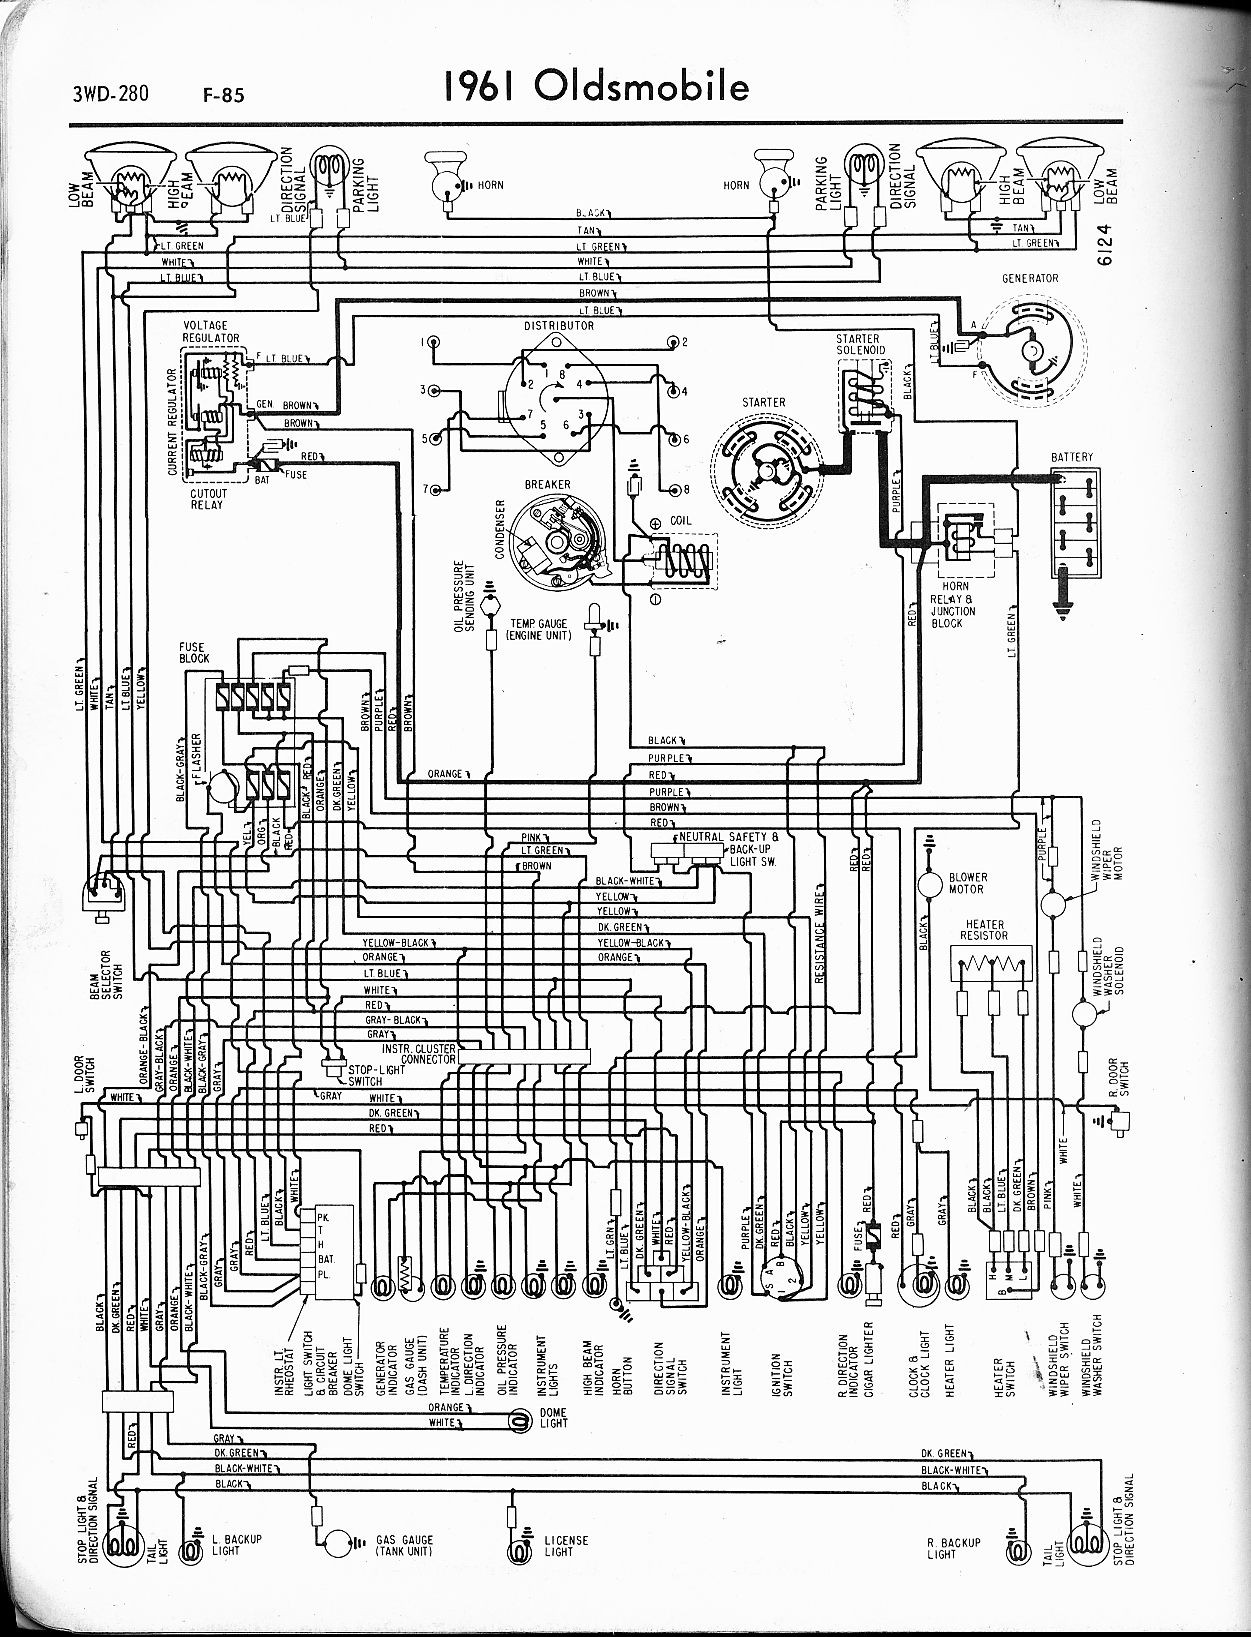 1972 Pontiac Grand Prix Wiring Diagram Library Catalina Schematic 1997 Am Engine 1984 Oldsmobile Cutlass Cutl Of